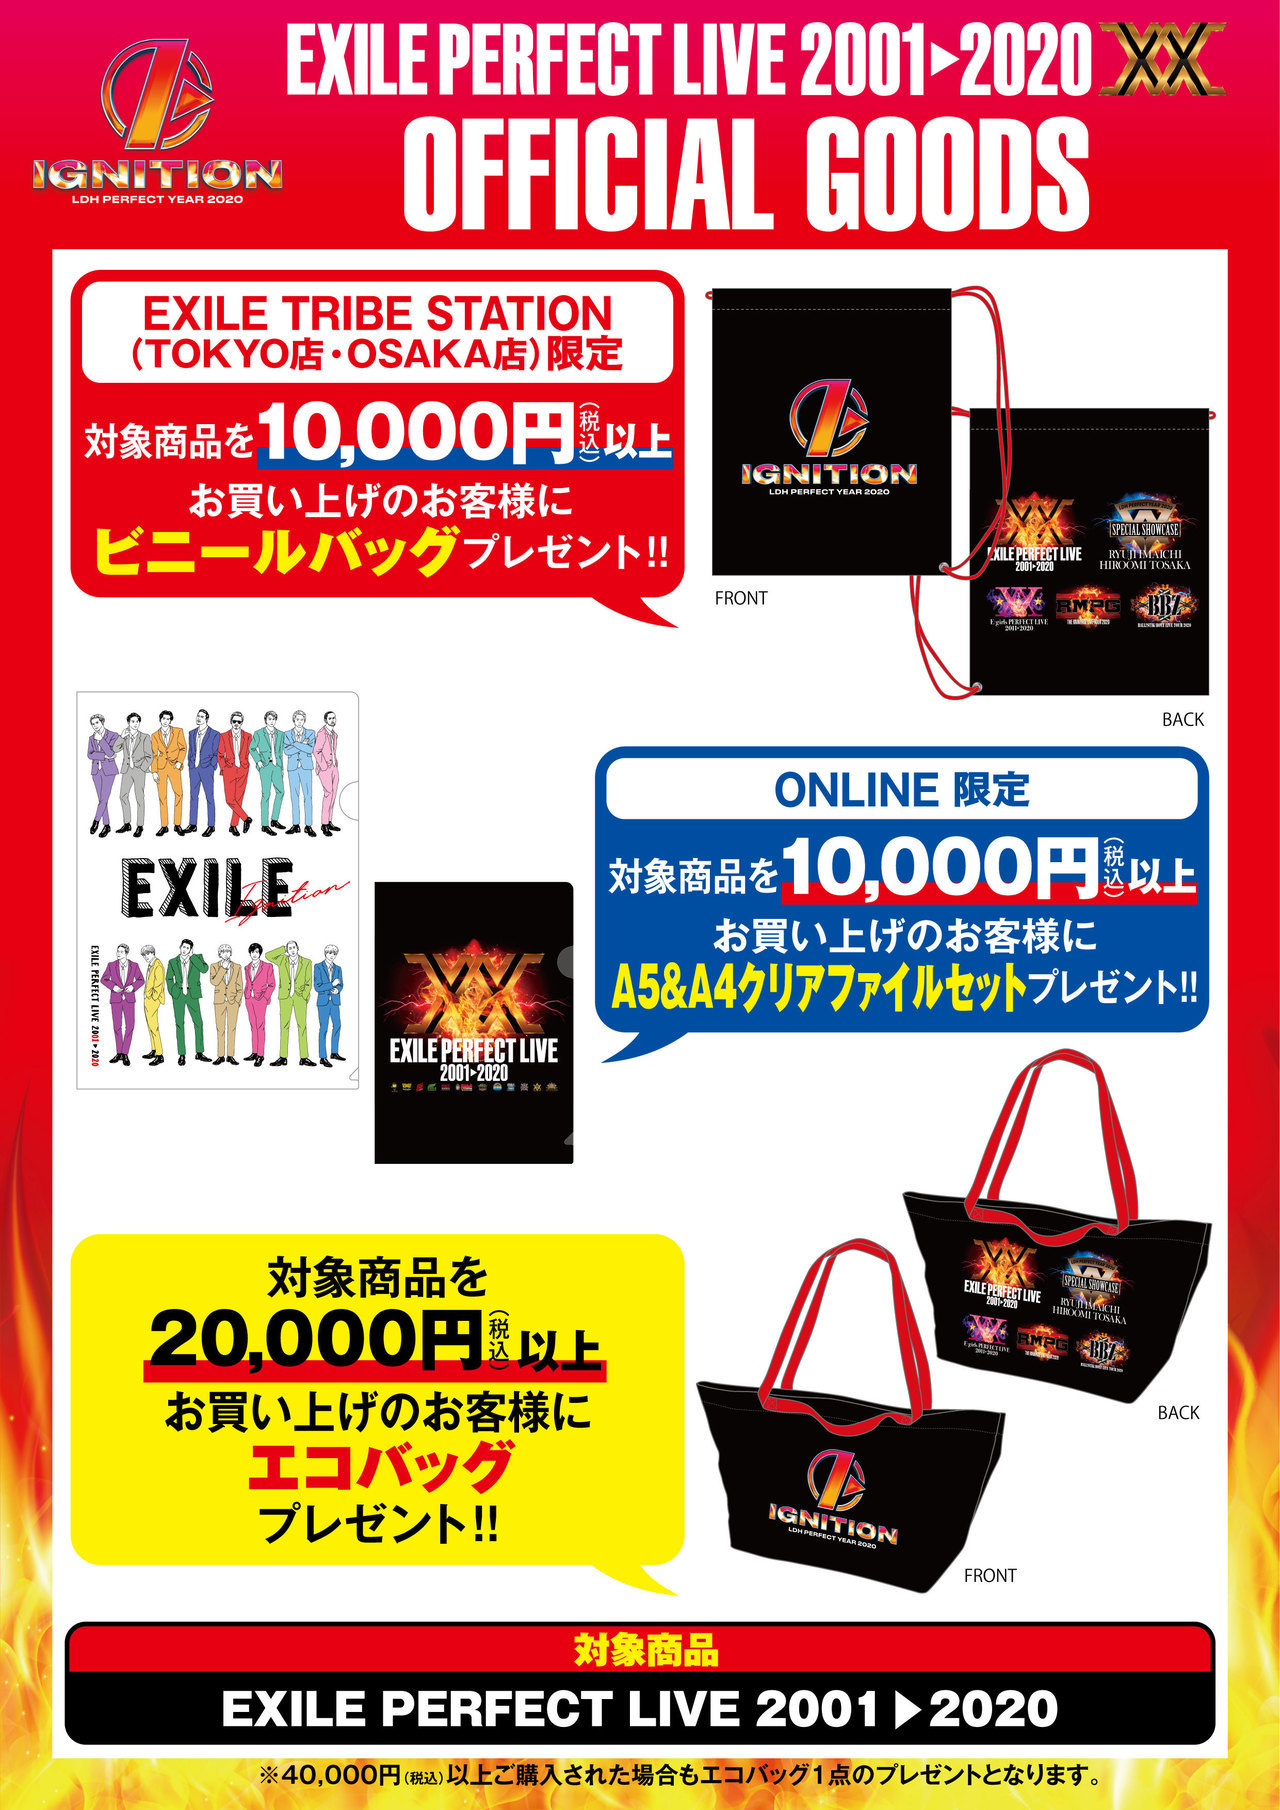 Exile ライブ 2020 グッズ